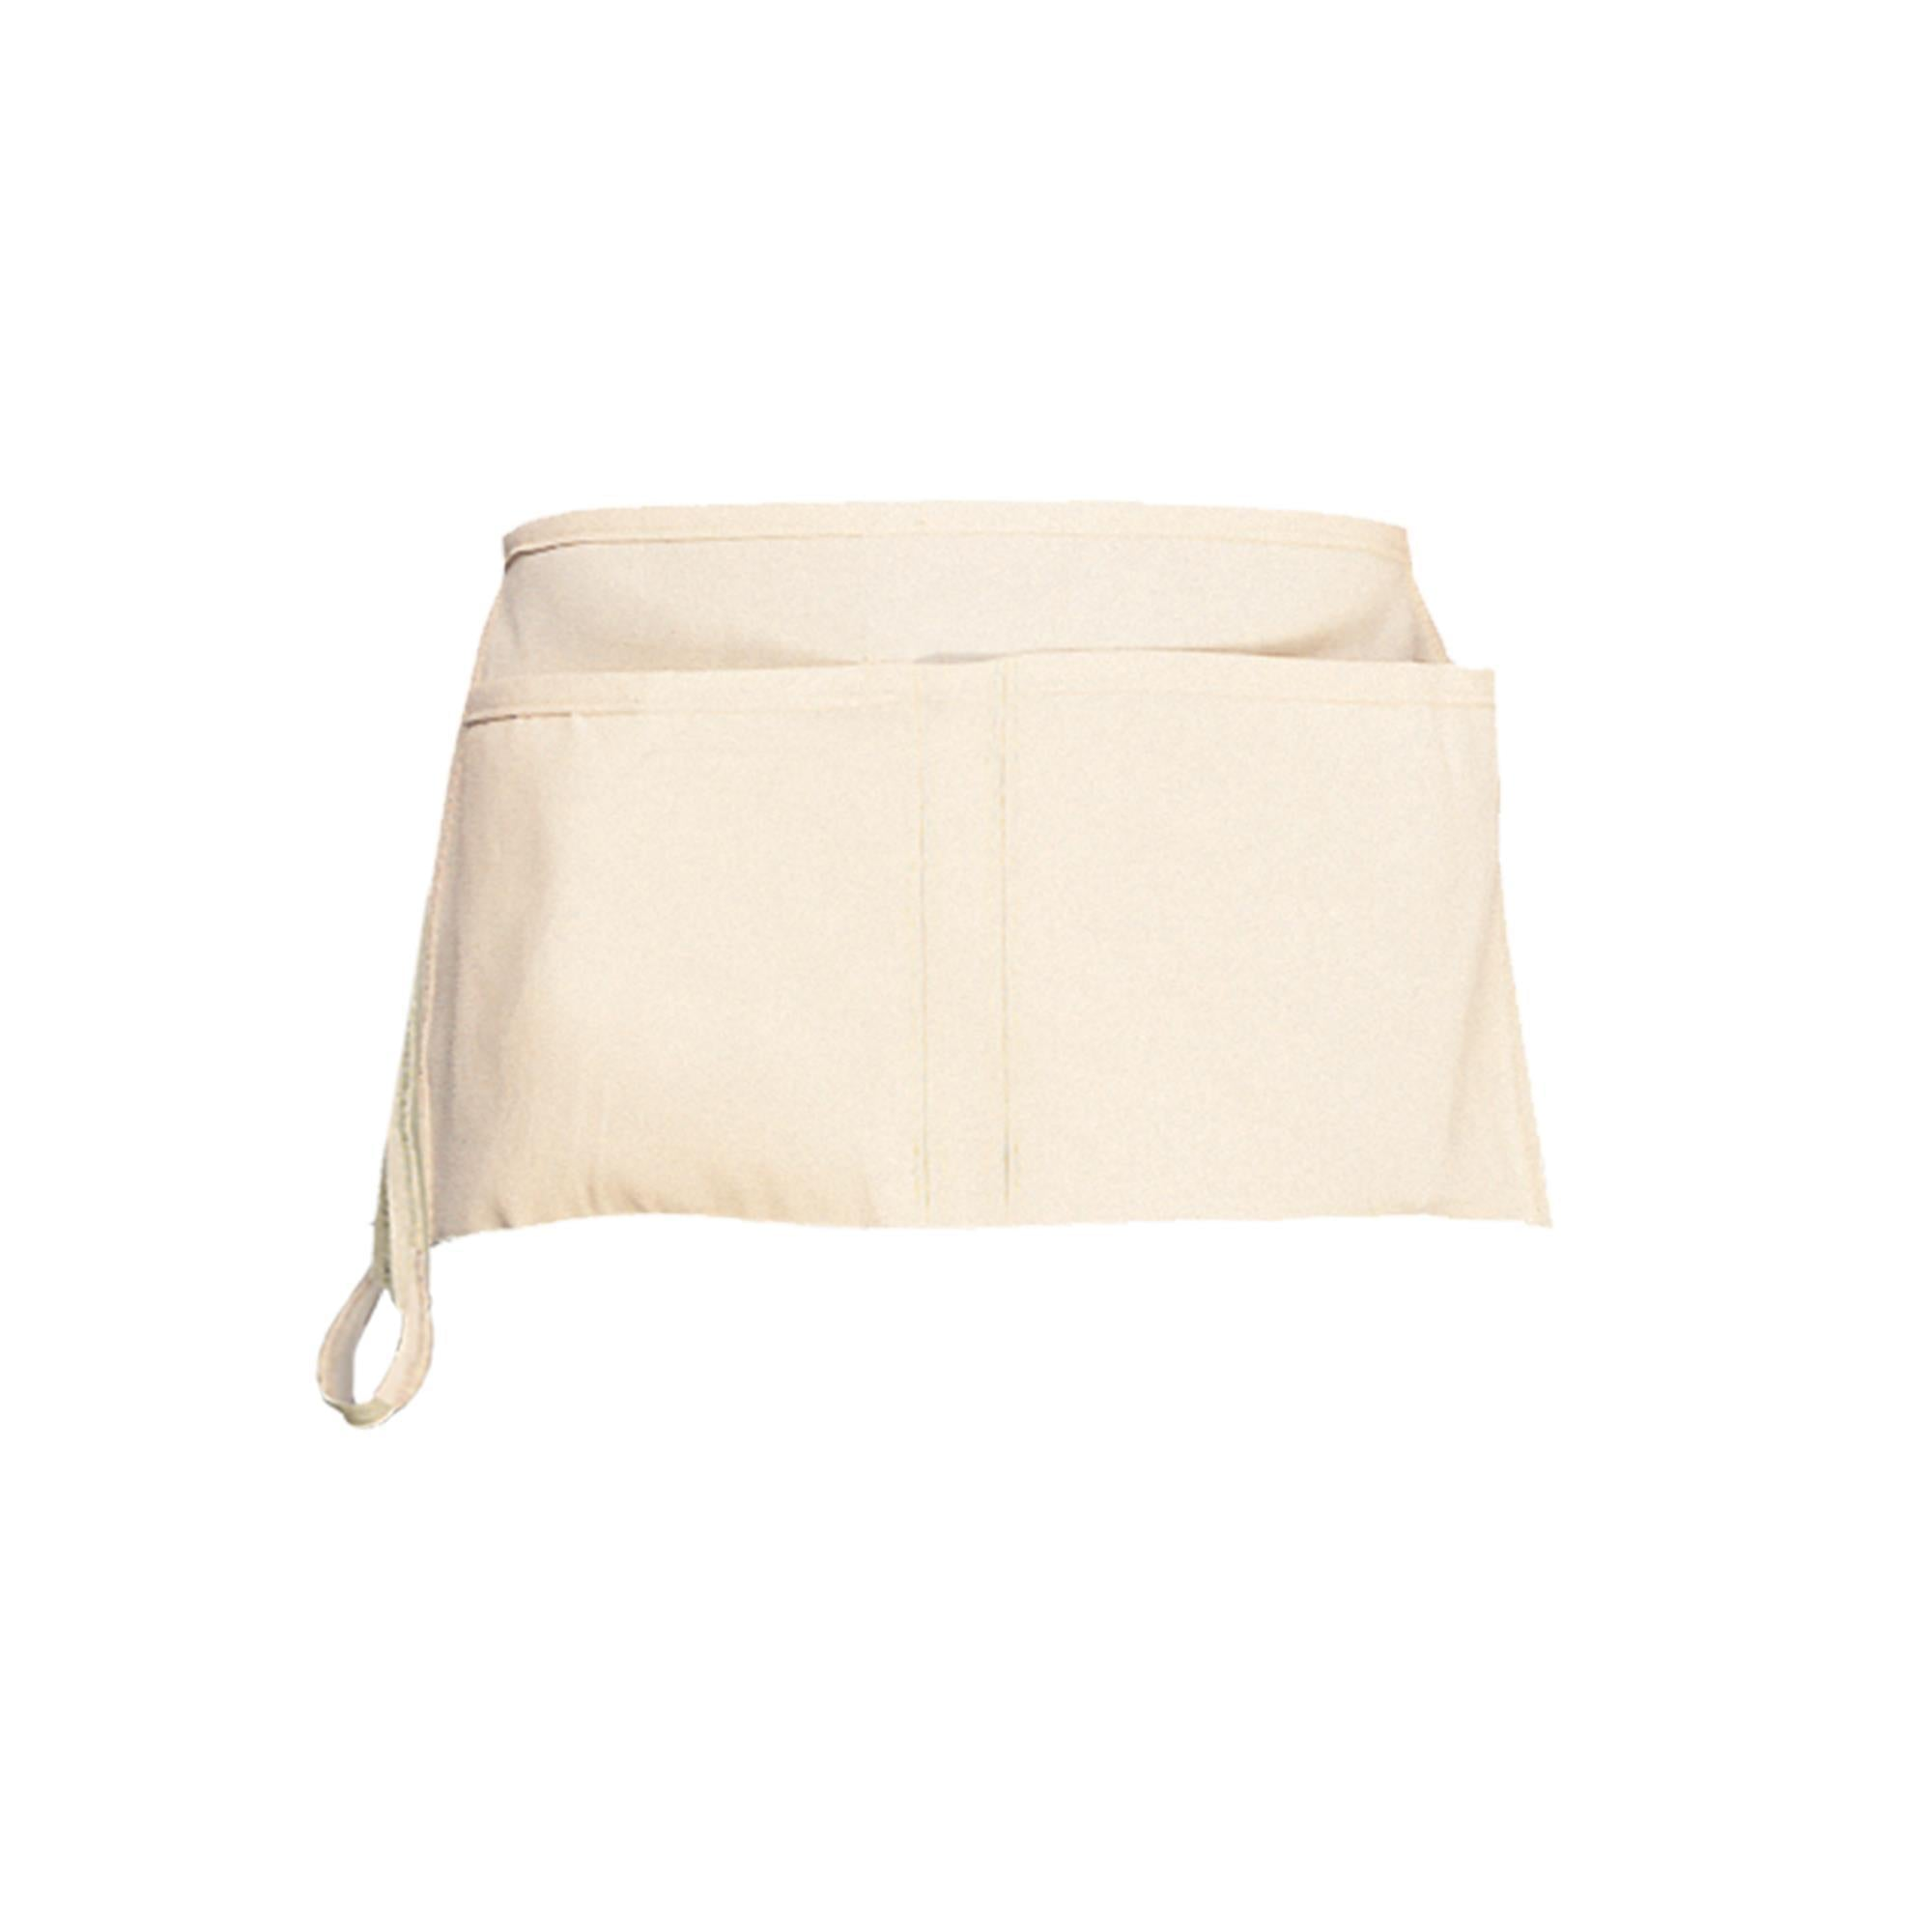 18065 F15 Canvas Apron 6pcs/carton